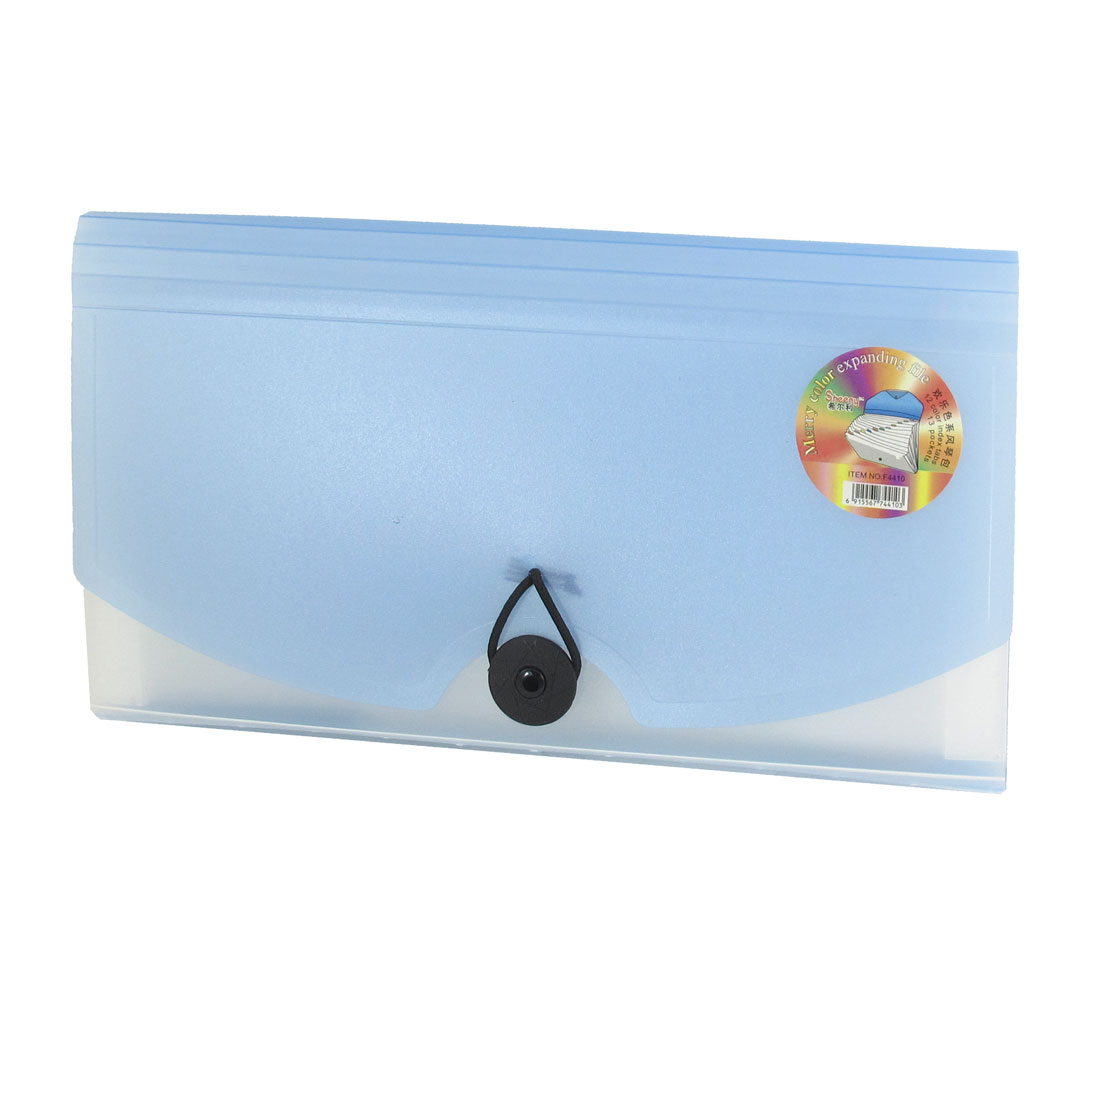 Portable Button Closoure Light Blue 13 Pocket Expanding File Holder Folder